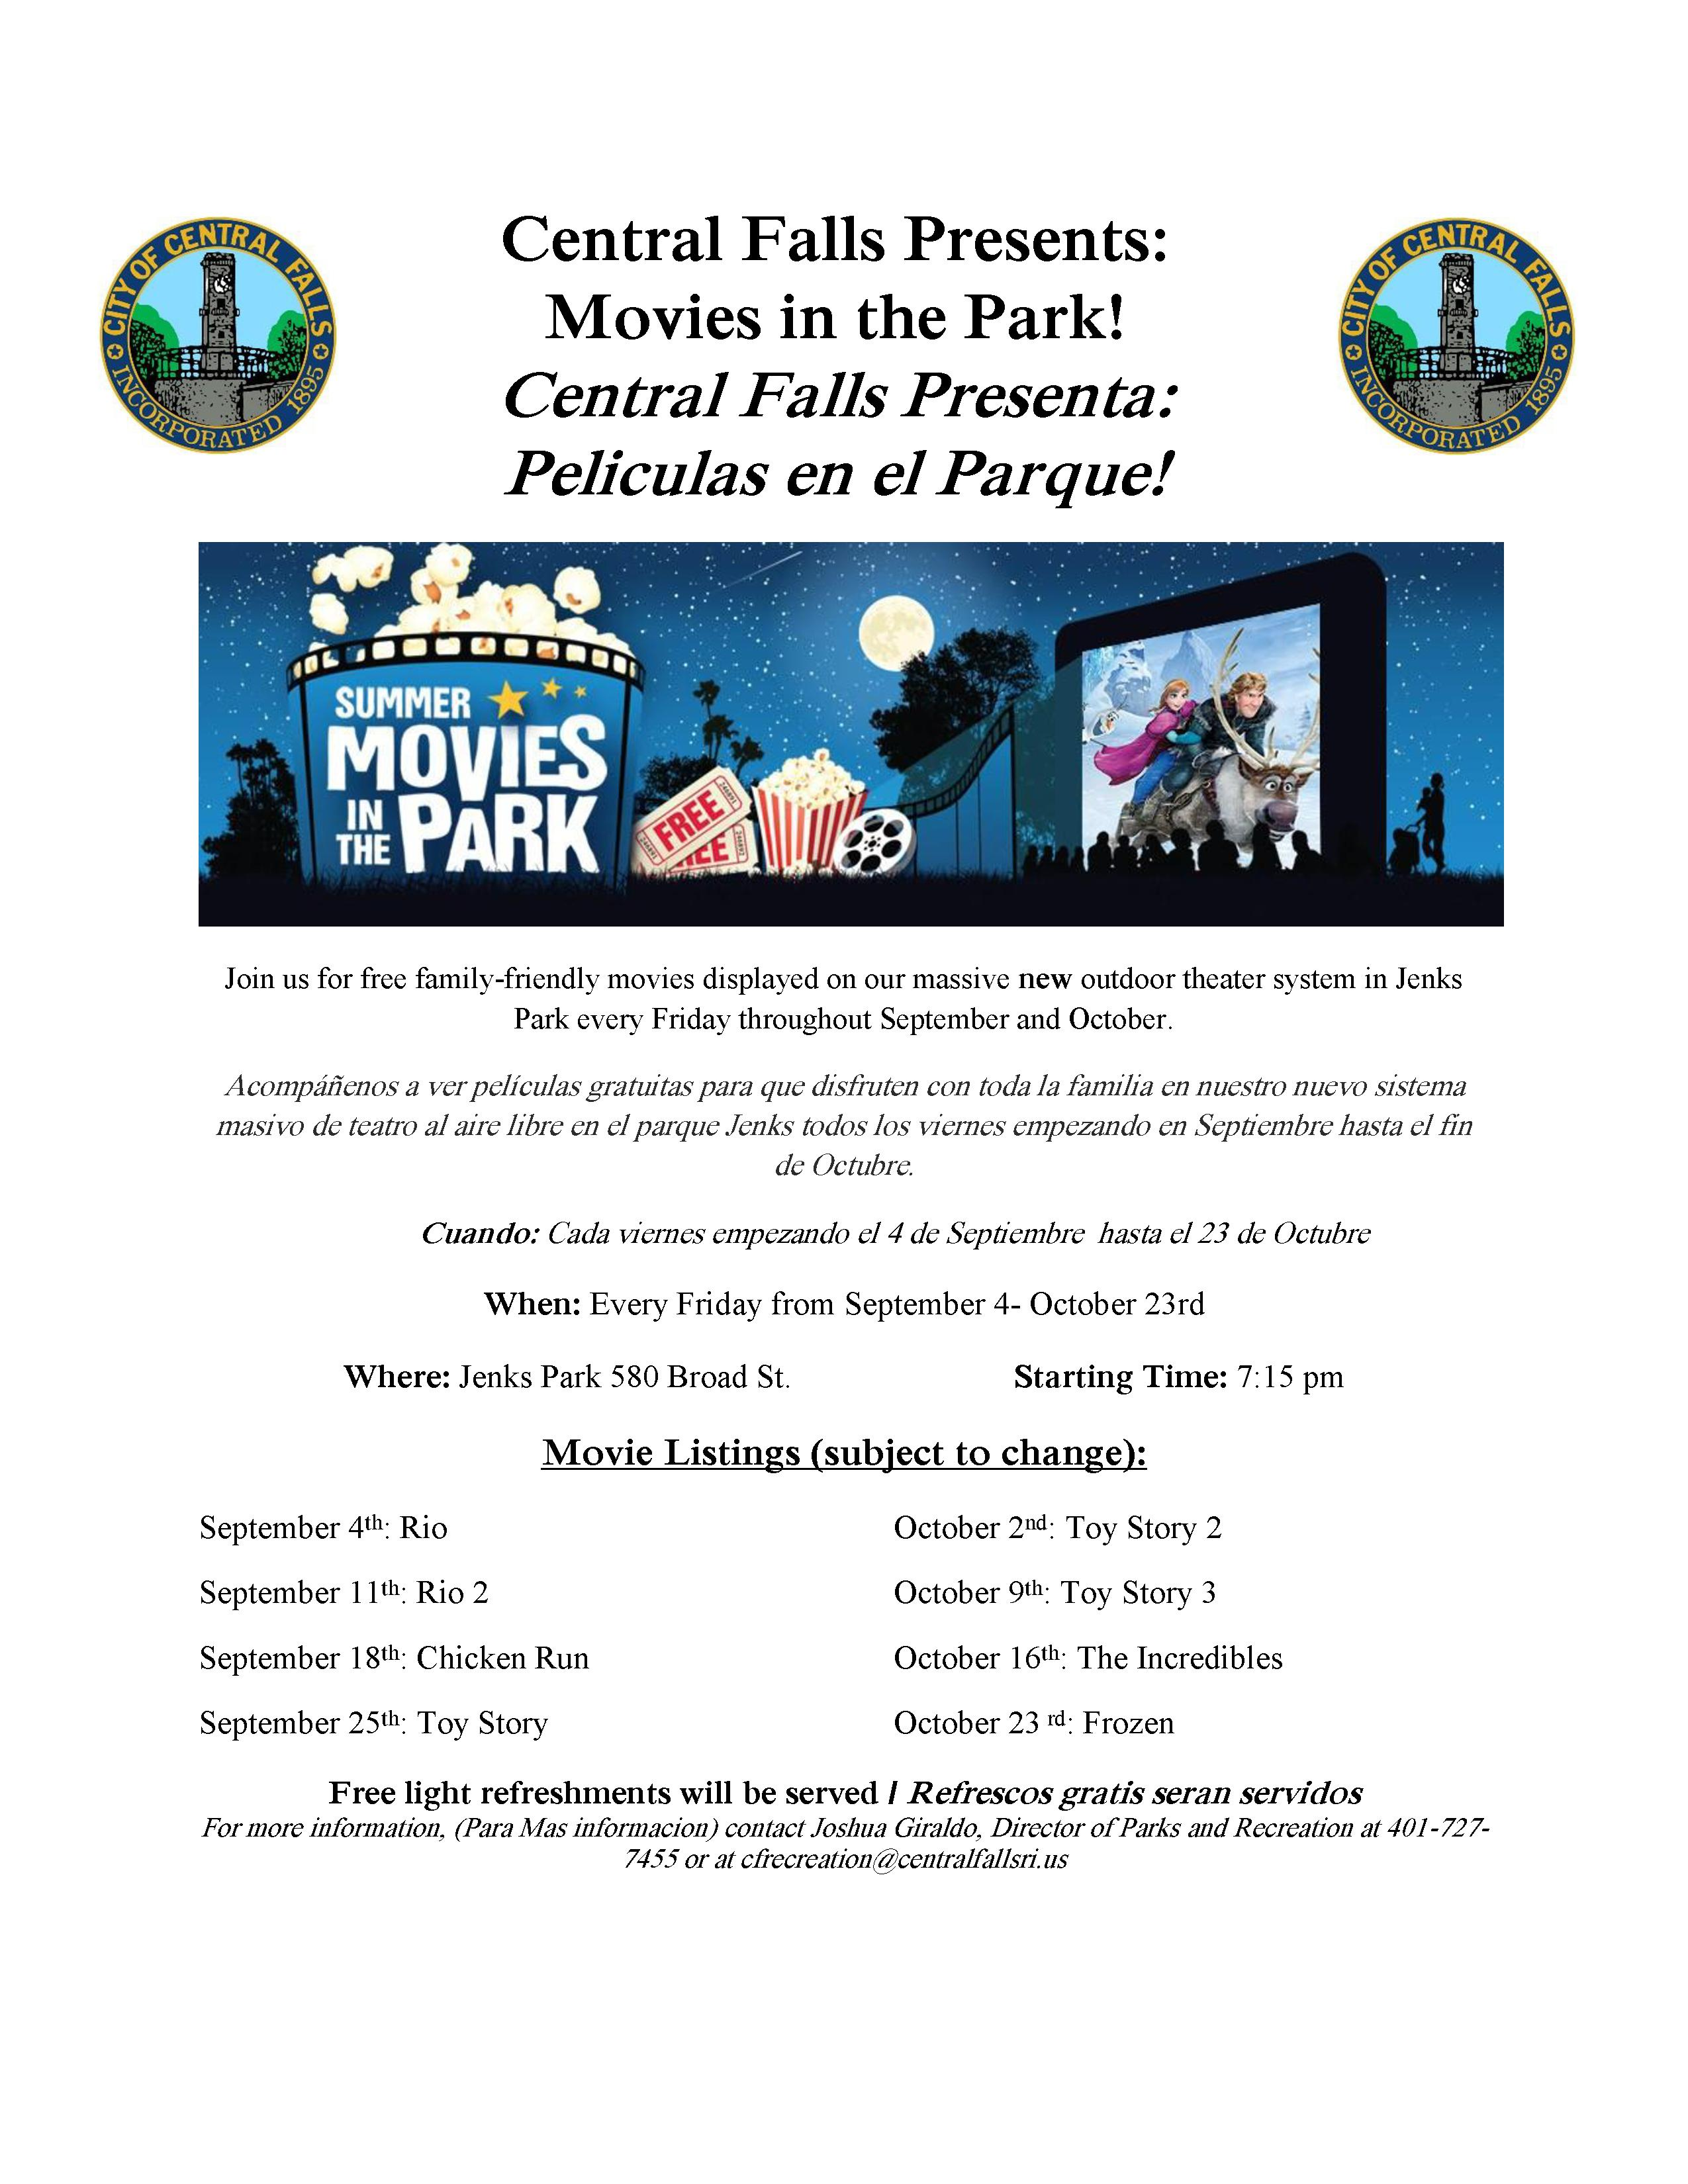 Movies_in_the_Park_bilingual_flyer.jpg